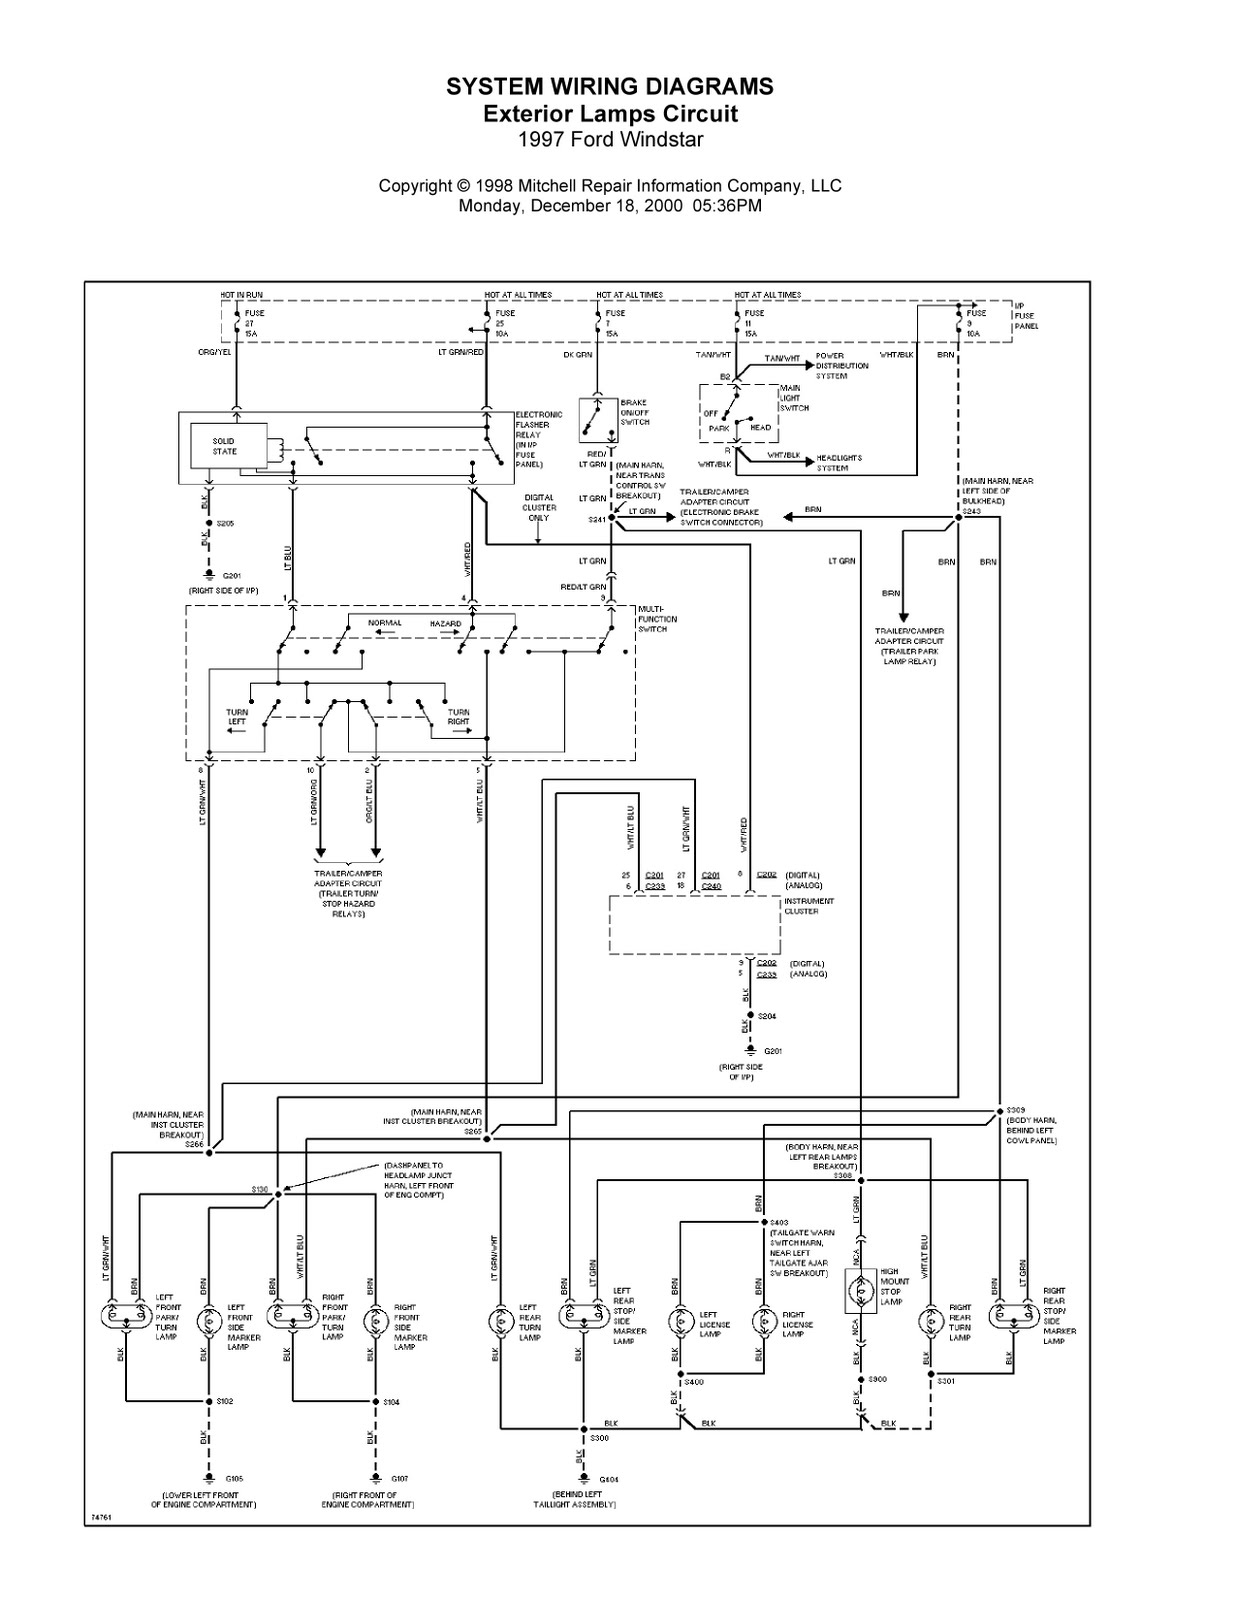 1997 Ford Windstar Complete System Wiring Diagrams